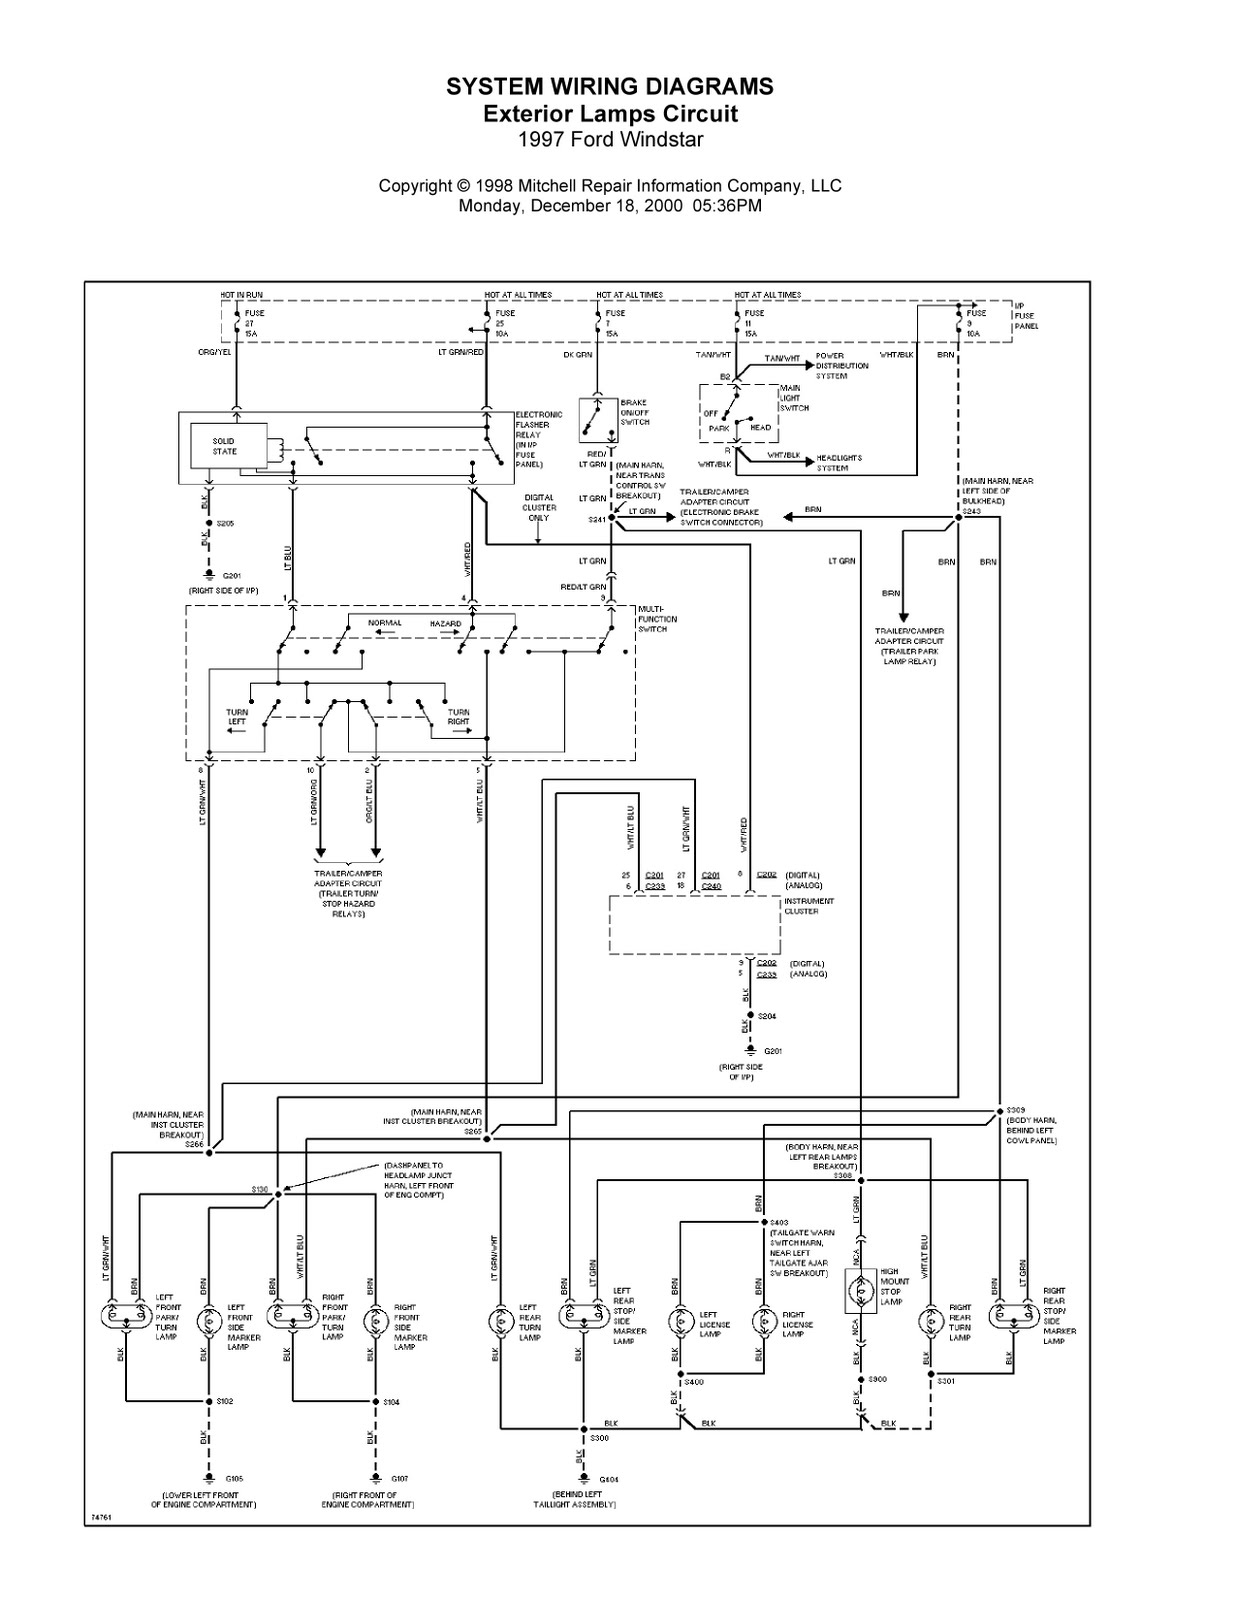 1997 Ford Windstar Complete System Wiring Diagrams